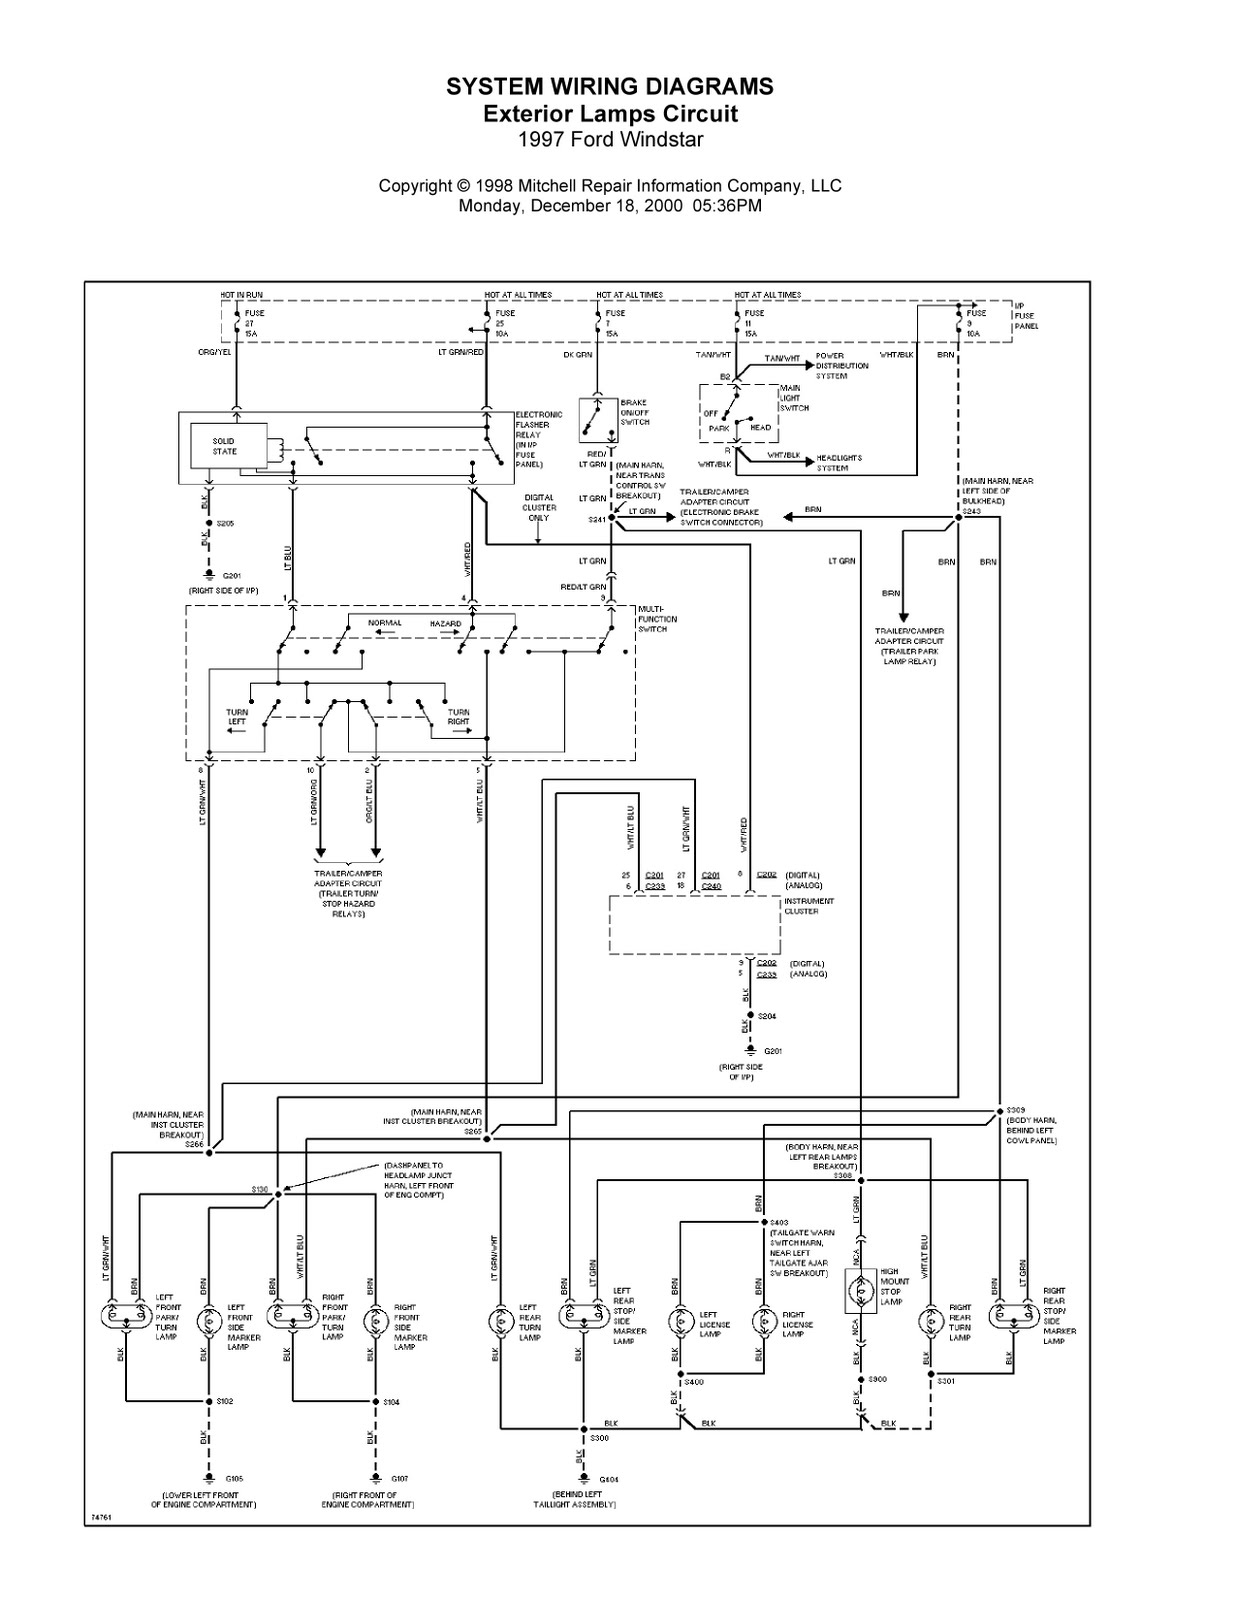 1997 Ford Windstar Complete System Wiring Diagrams